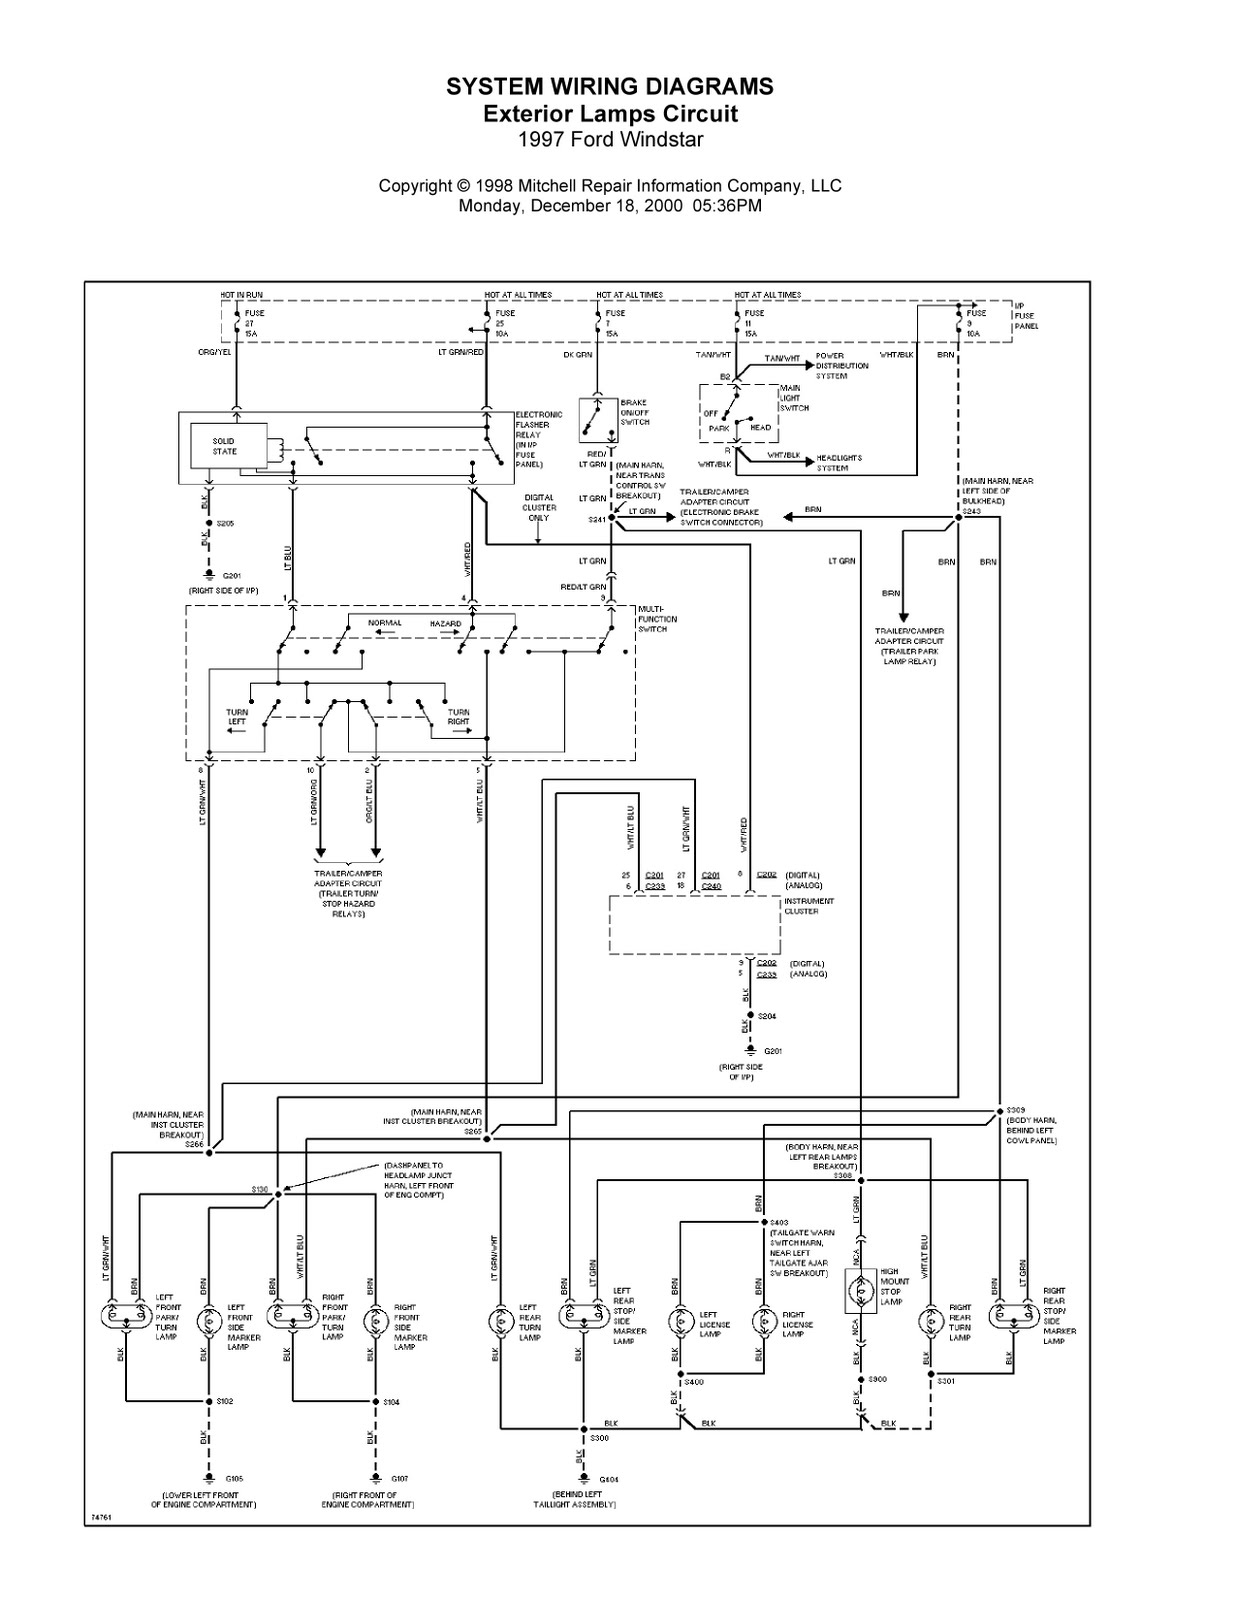 1997 Ford Windstar Complete System Wiring Diagrams